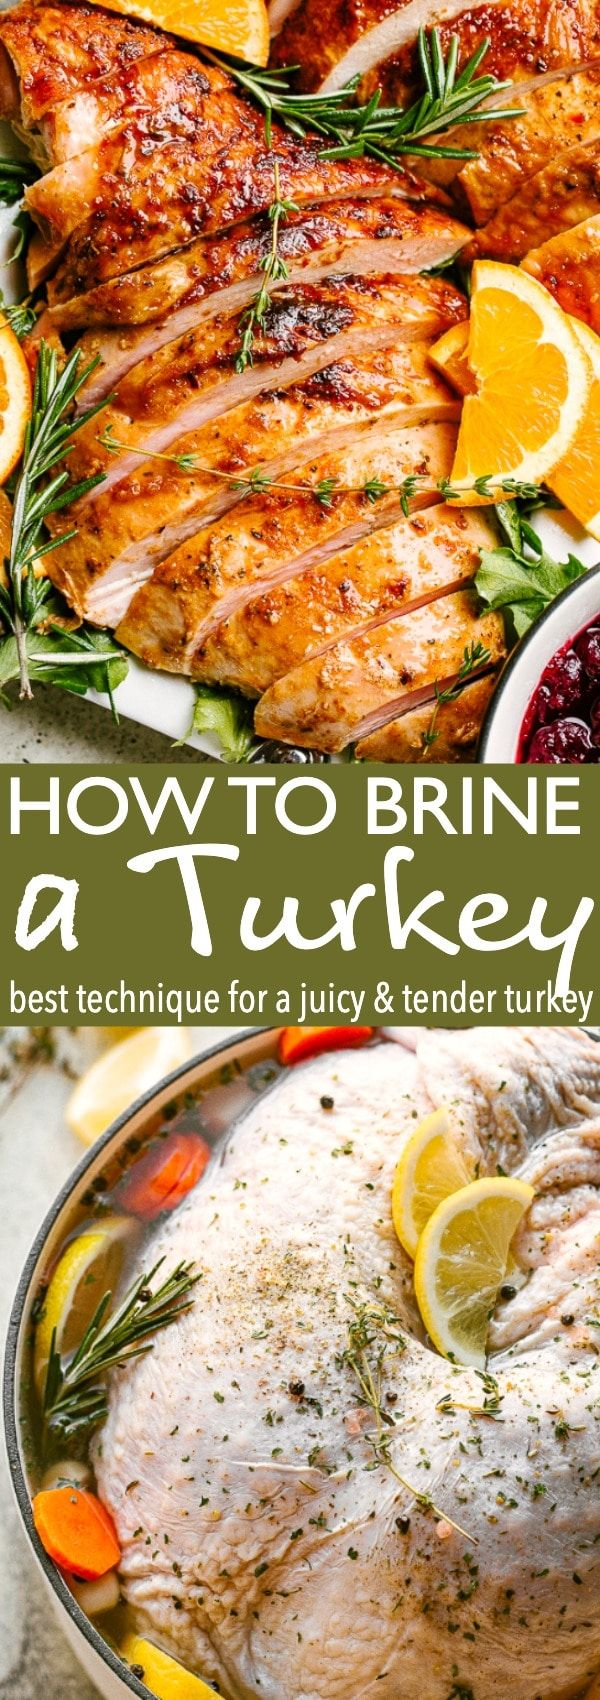 Photo of EASY Turkey Brine Recipe for the Most Flavorful Turkey of Your Life!